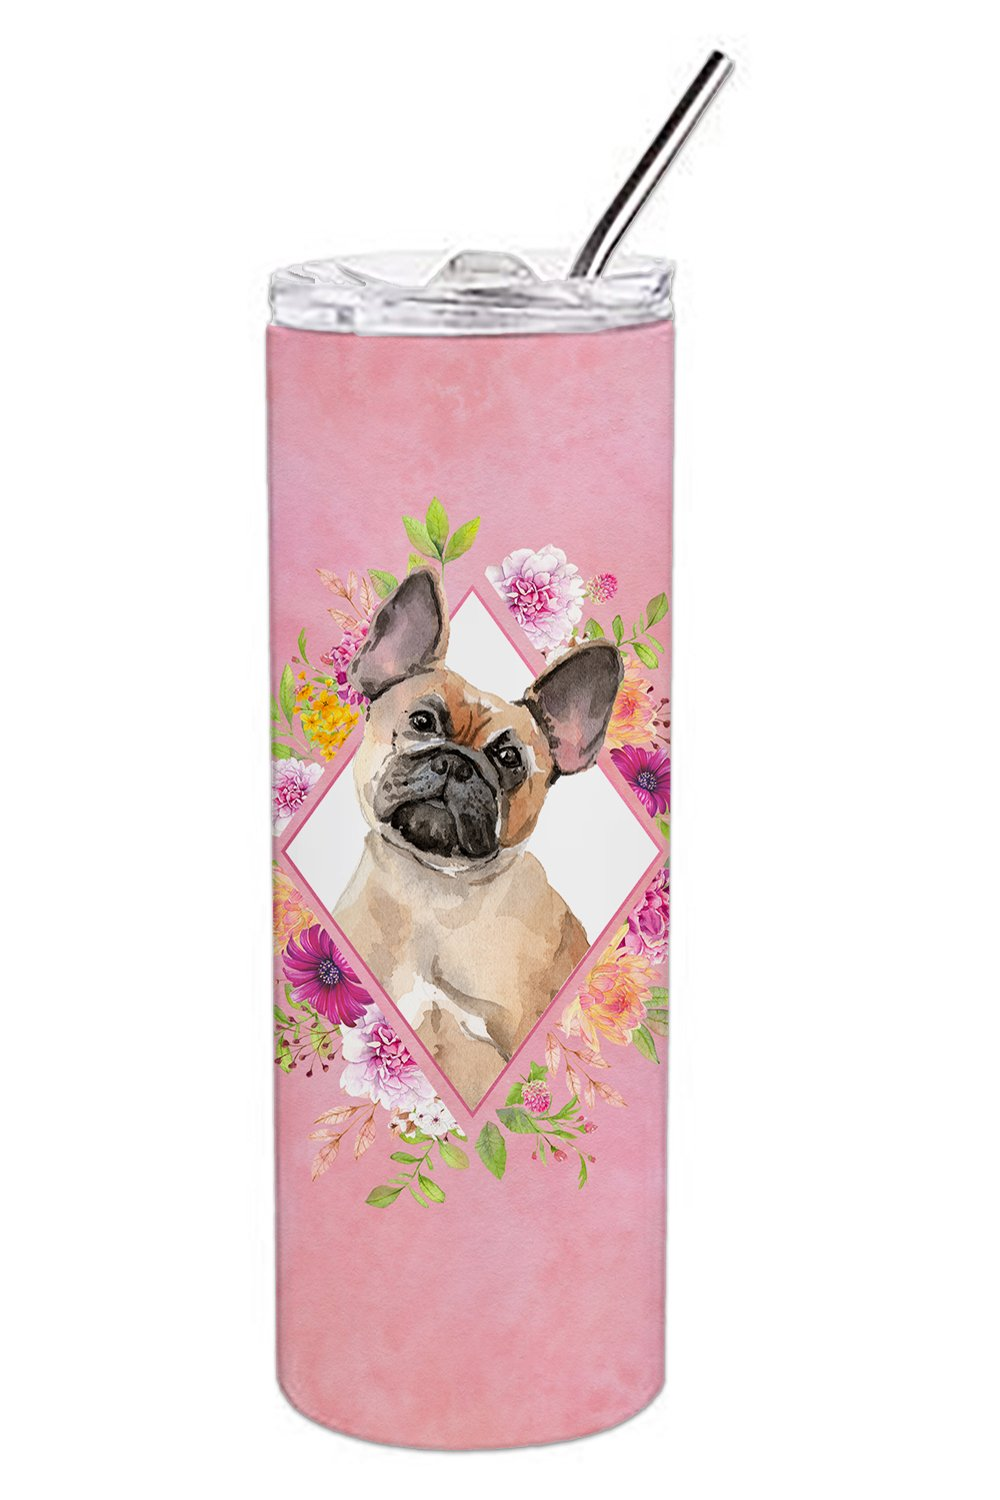 Fawn French Bulldog Pink Flowers Double Walled Stainless Steel 20 oz Skinny Tumbler CK4238TBL20 by Caroline's Treasures